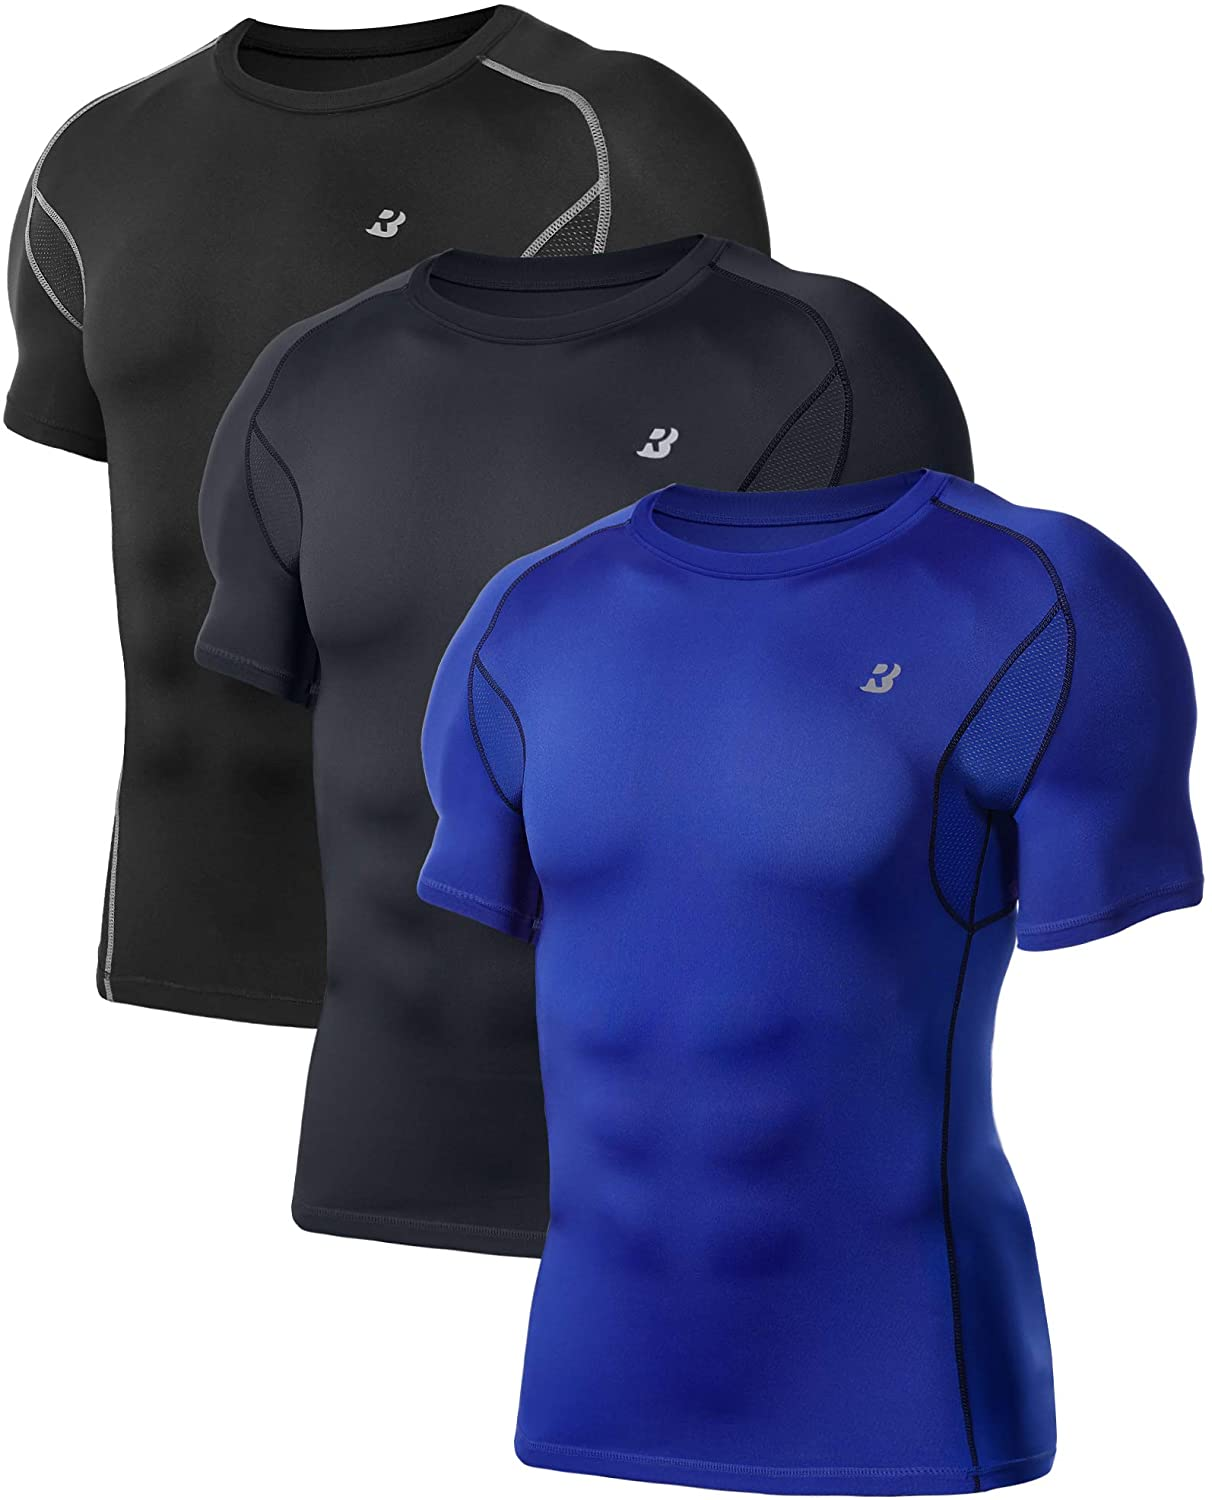 3 Pack Underarm Mesh Workout Gym Athletic Under Base Layer Sports Shirts